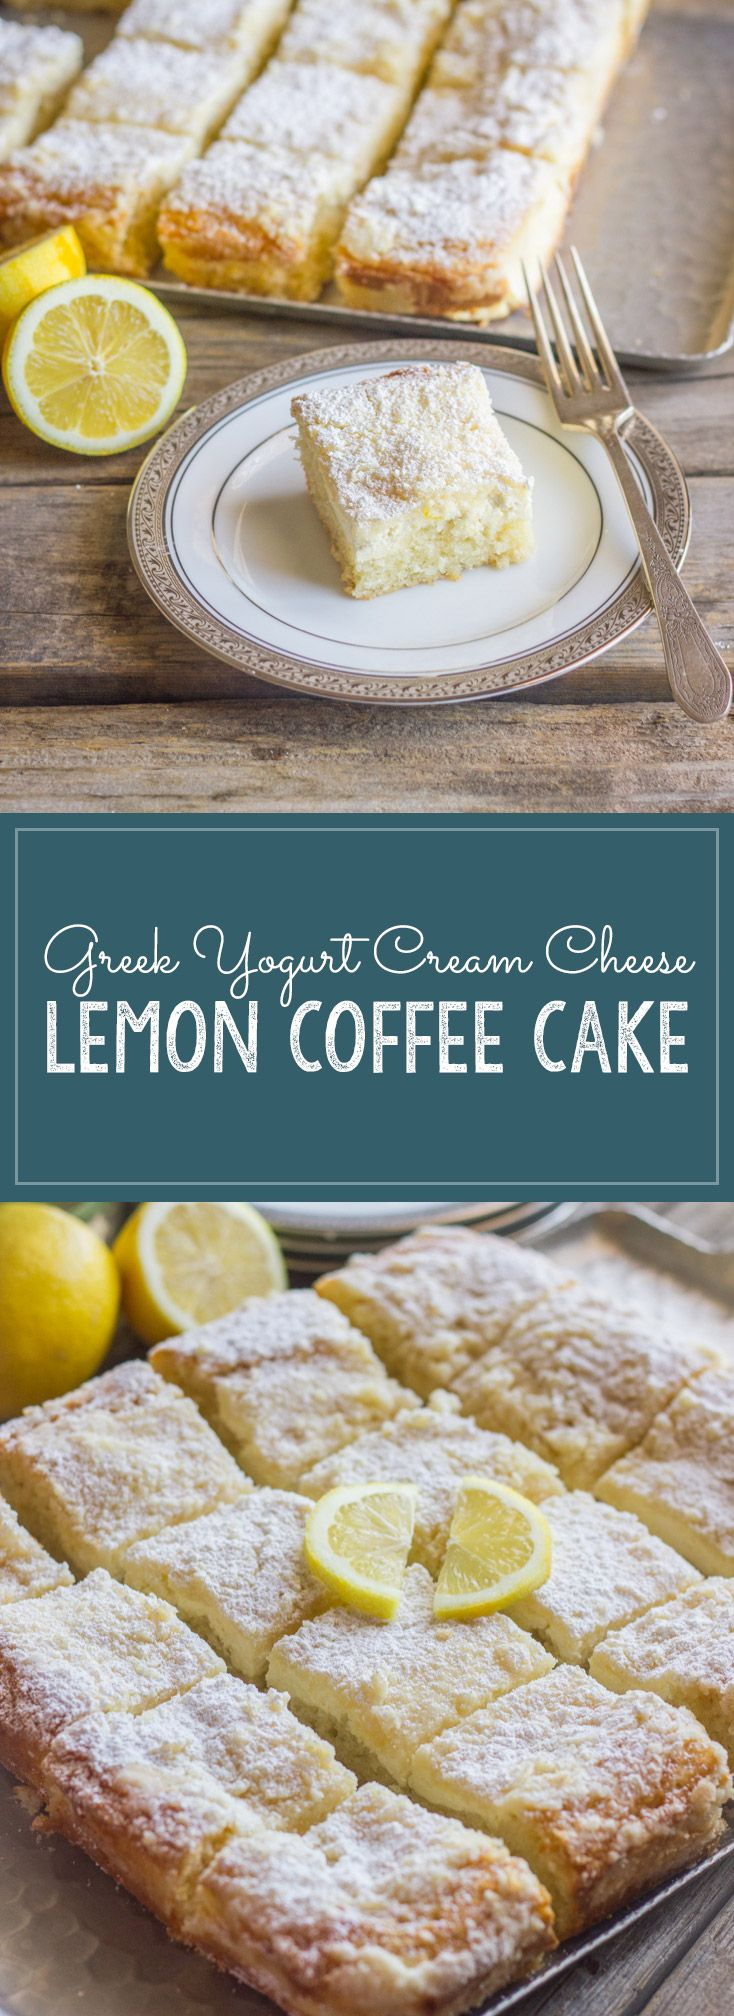 Greek Yogurt Cream Cheese Lemon Coffee Cake